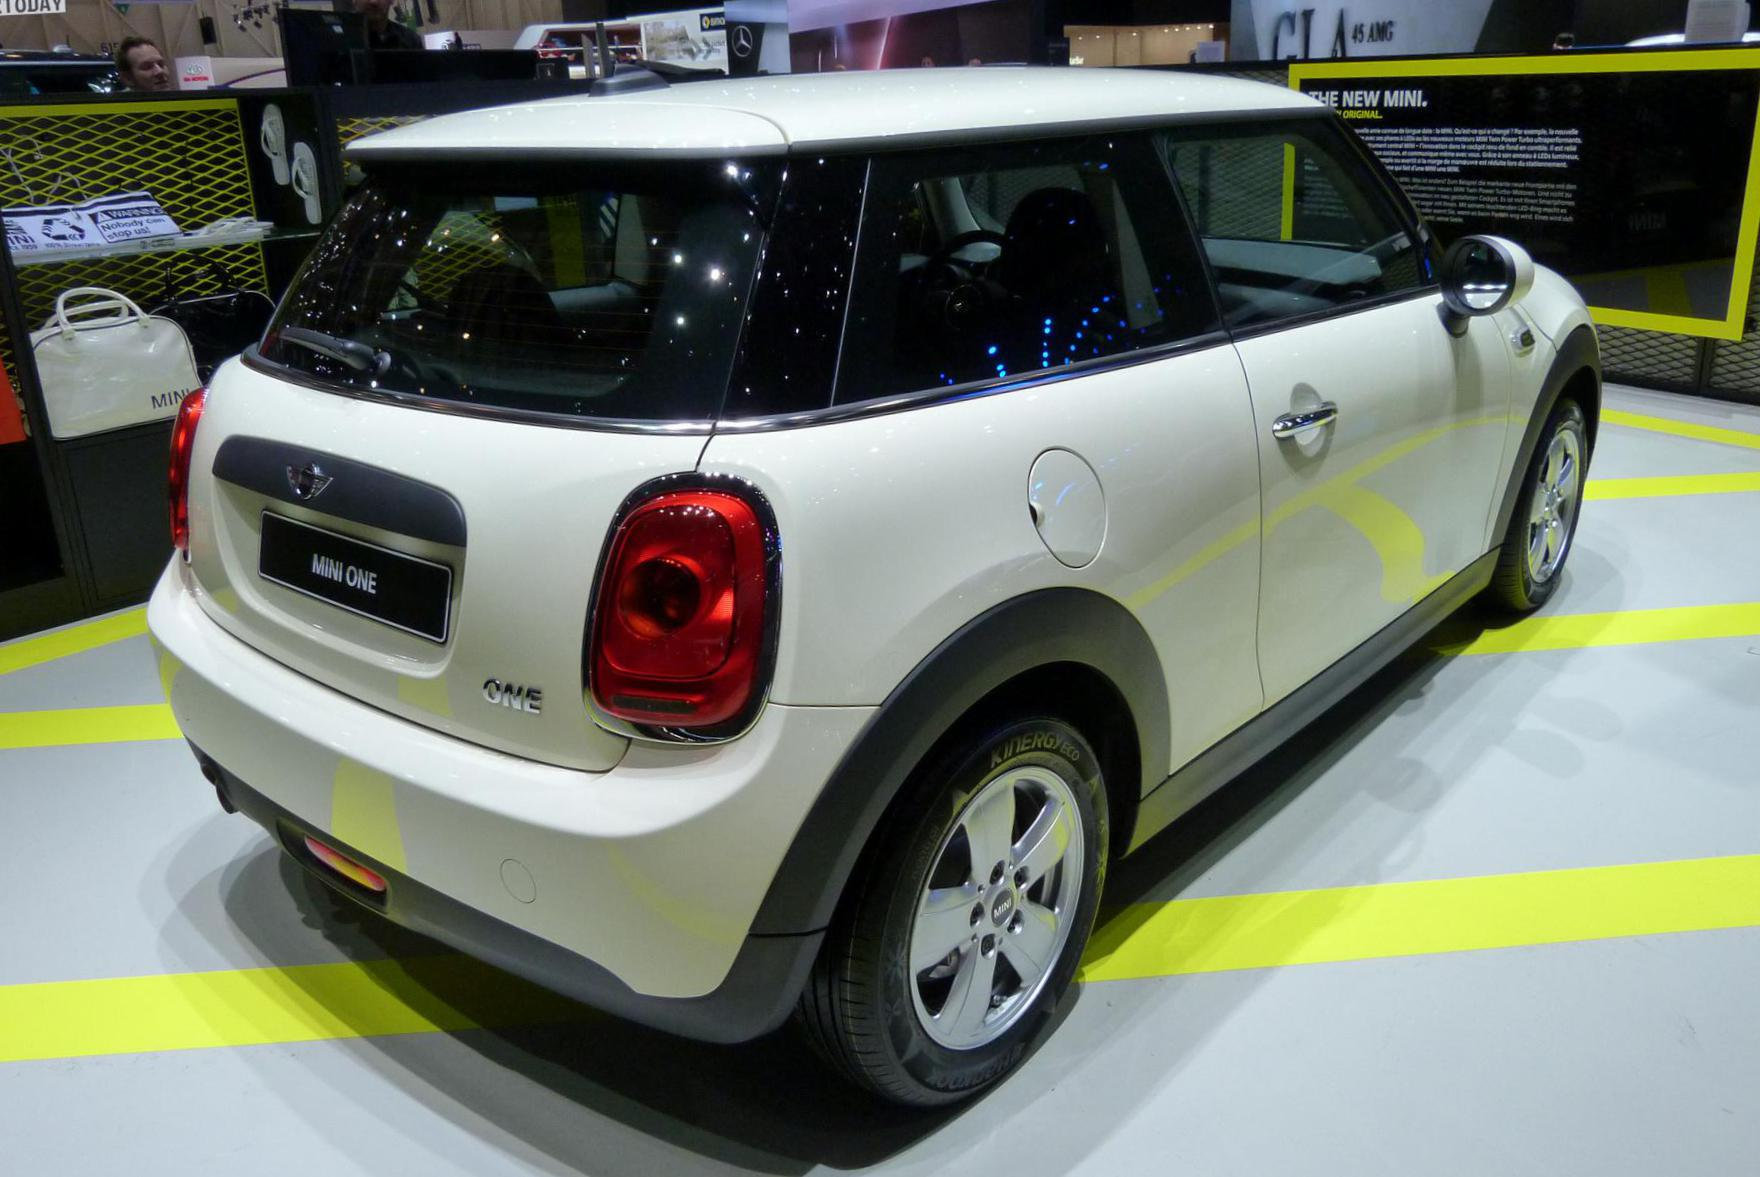 MINI One usa hatchback